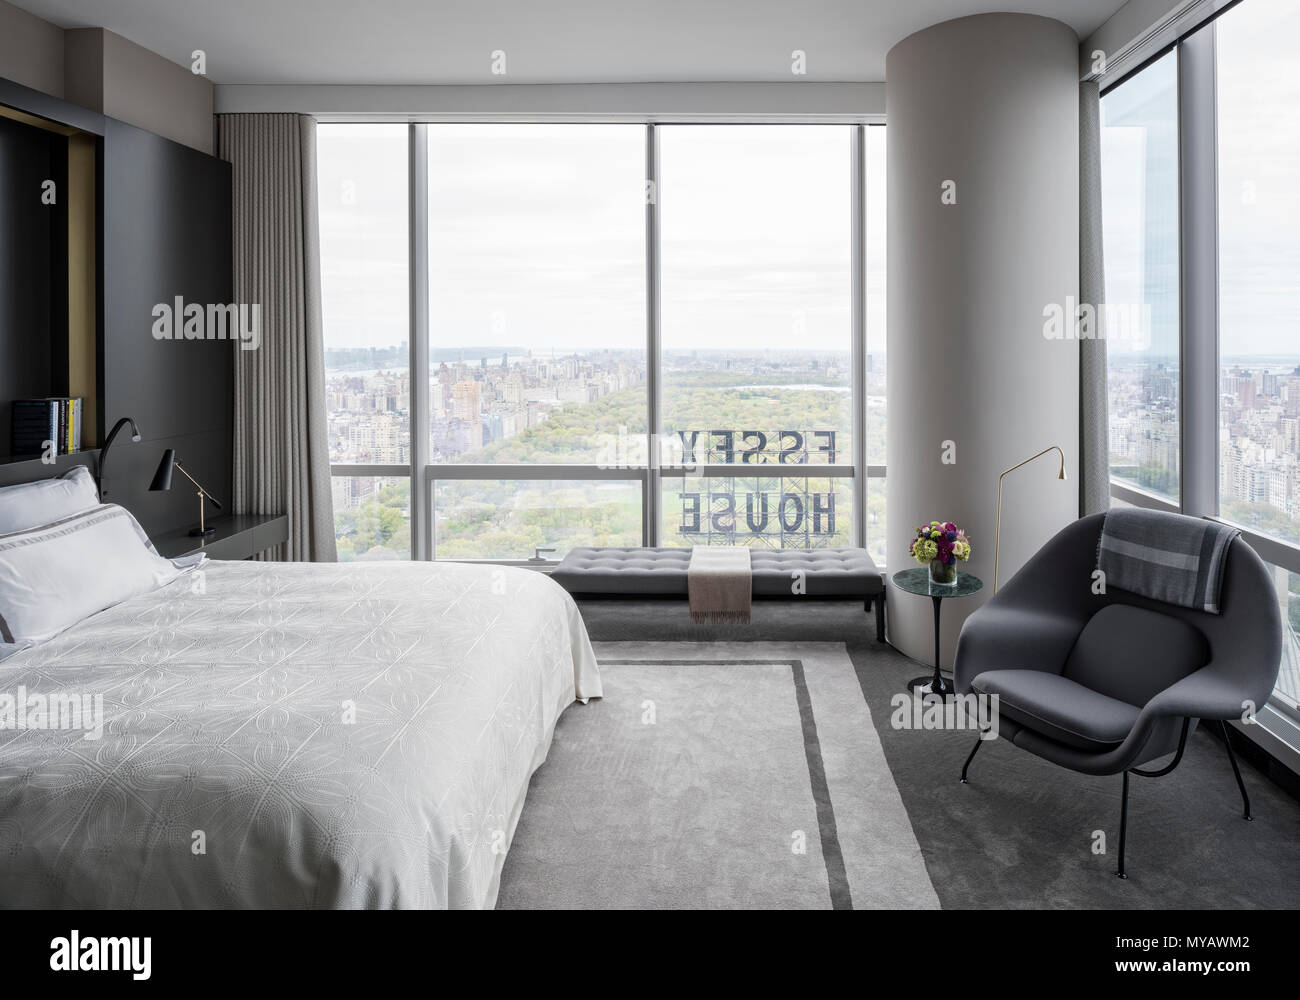 Modern Schlafzimmer Modern Schlafzimmer In Wohnung In New York City Usa Stockfoto